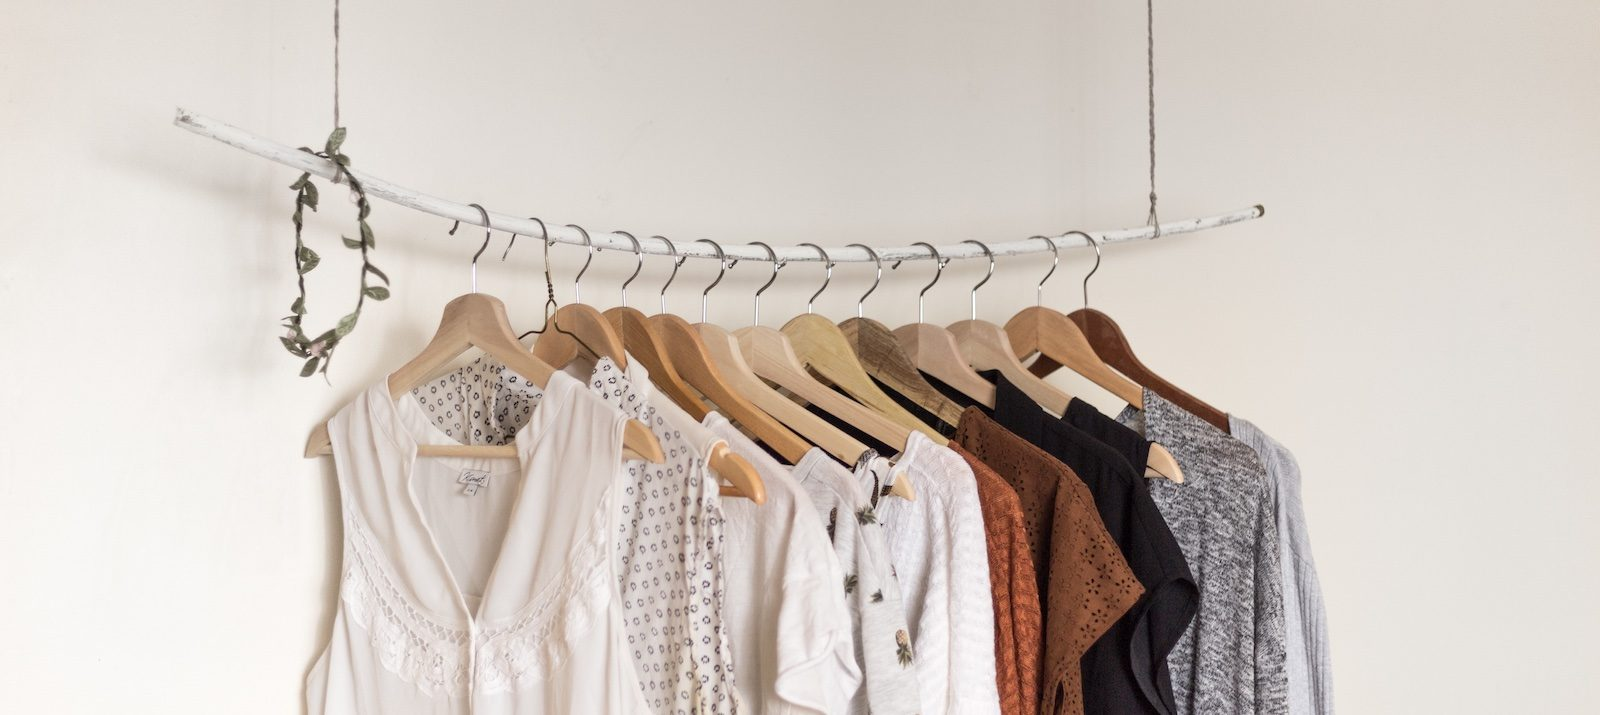 91e787d06 How To Easily Organize Everything In Your Closet (For Cheap)